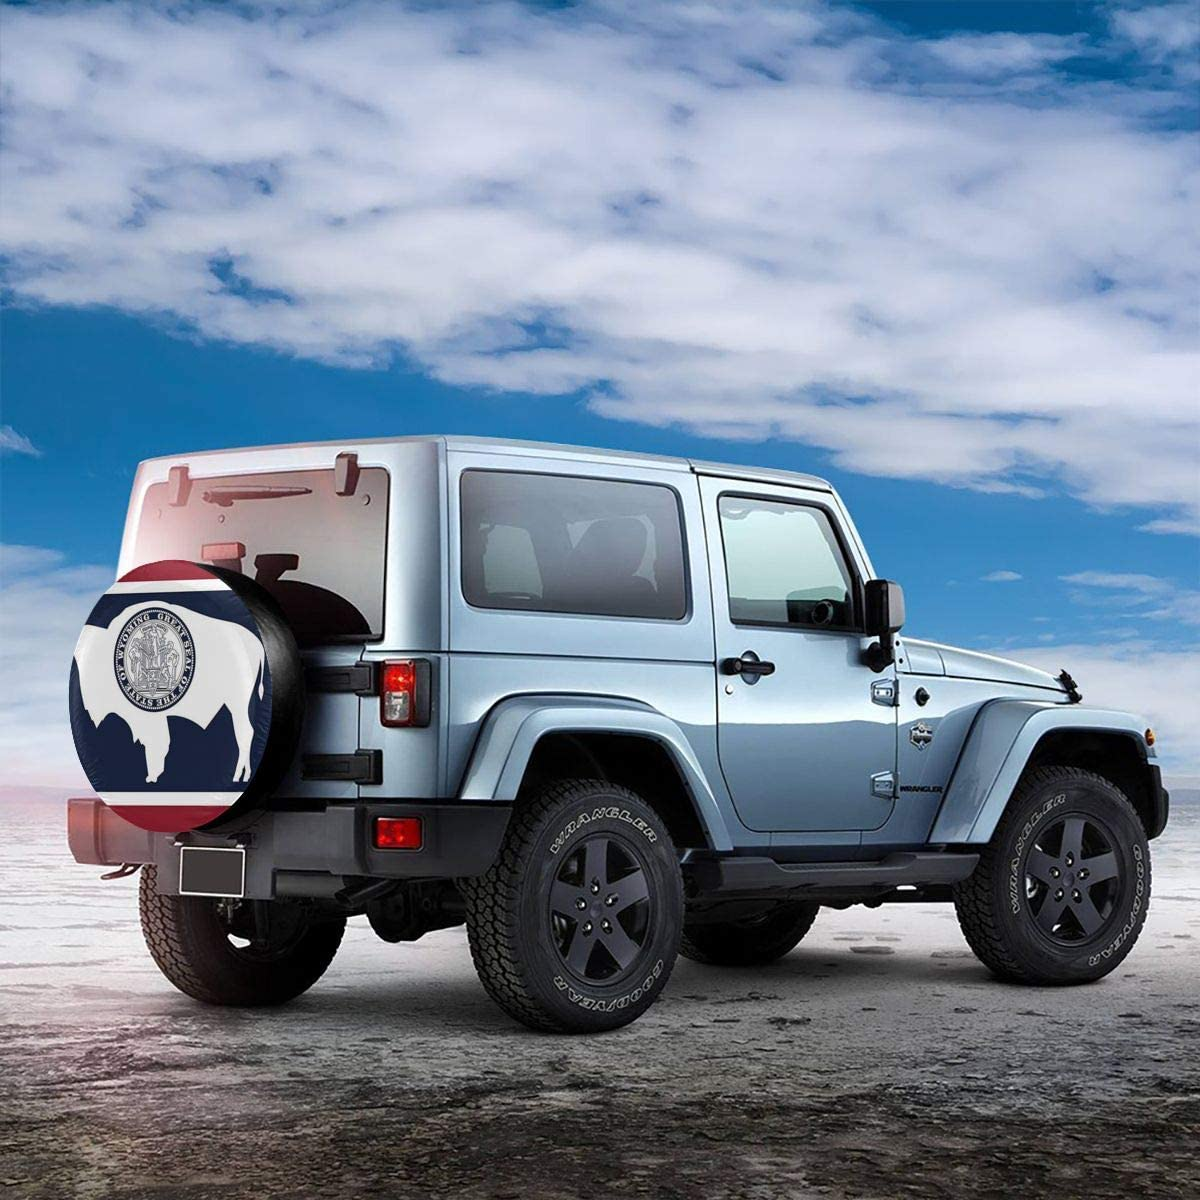 SUV RV Truck and Many Vehicle Kanteband Universal Spare Tire Cover Detroit Lions Weatherproof Tire Protectors Spare Wheel Tire Cover Fit for Jeep Trailer